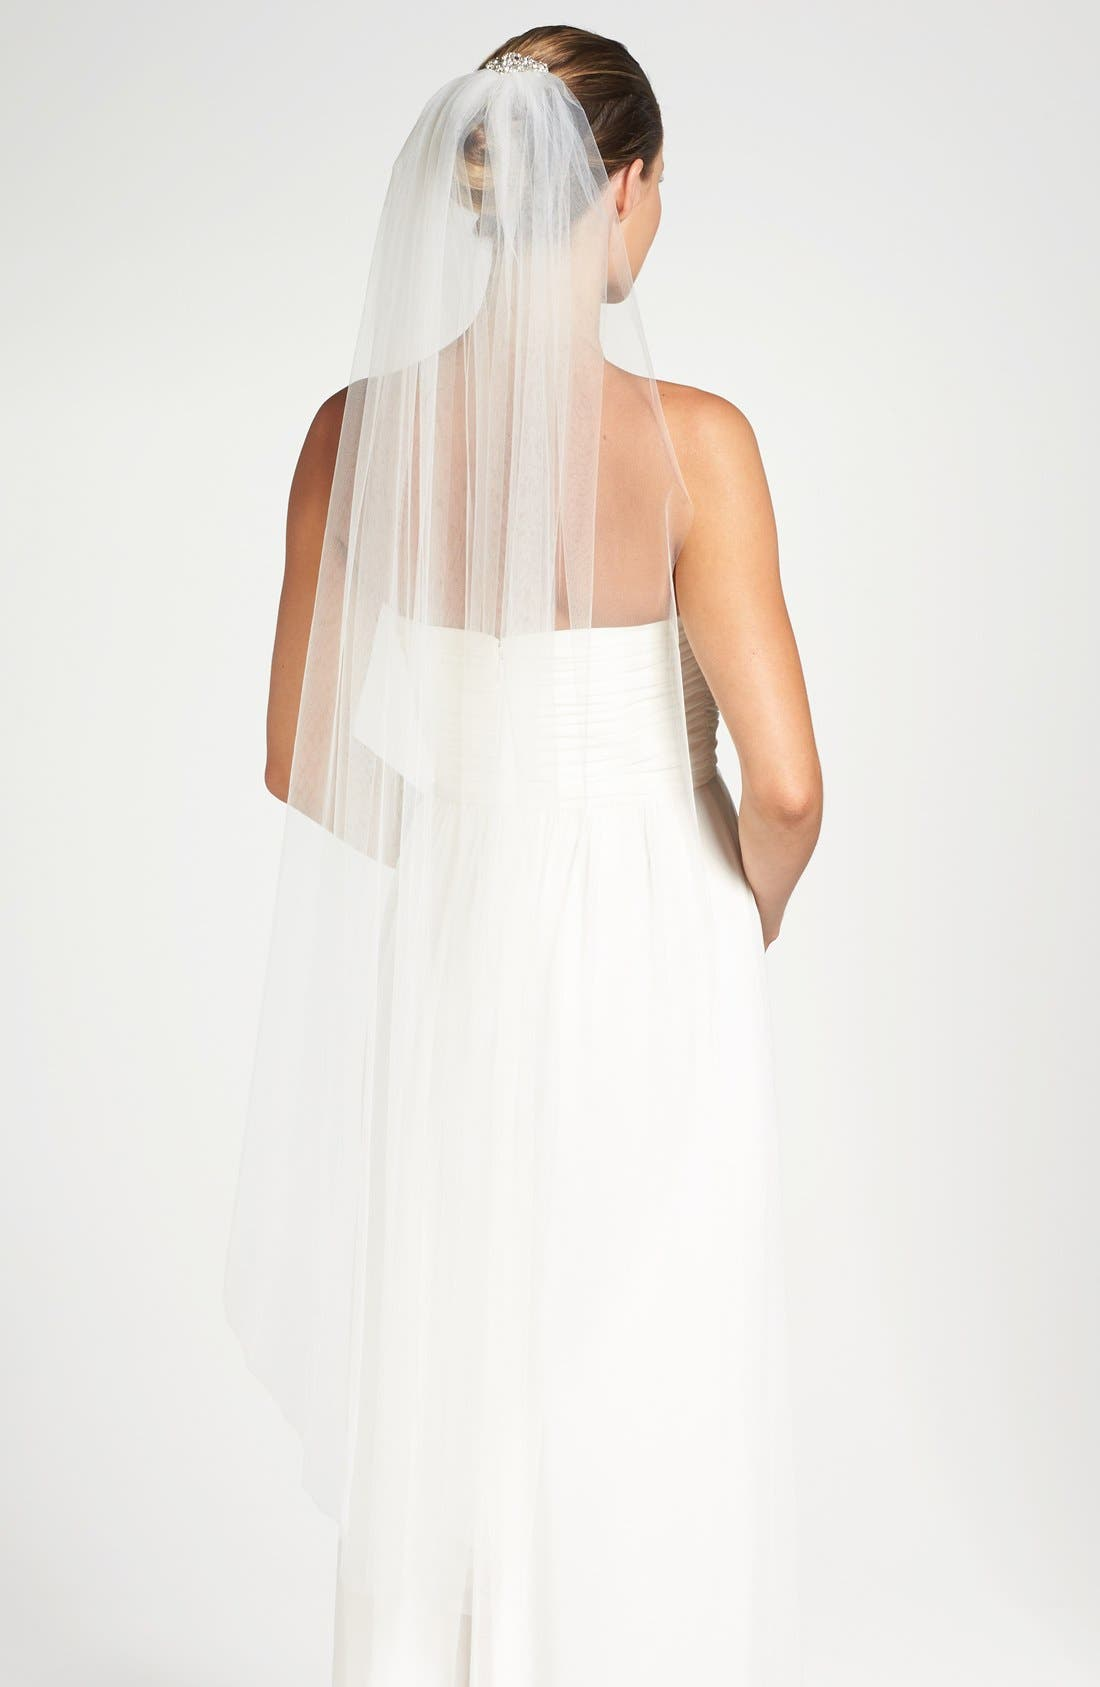 Main Image - Toni Federici 'Sugar Pie' Embellished Hair Comb with Waltz Length Veil